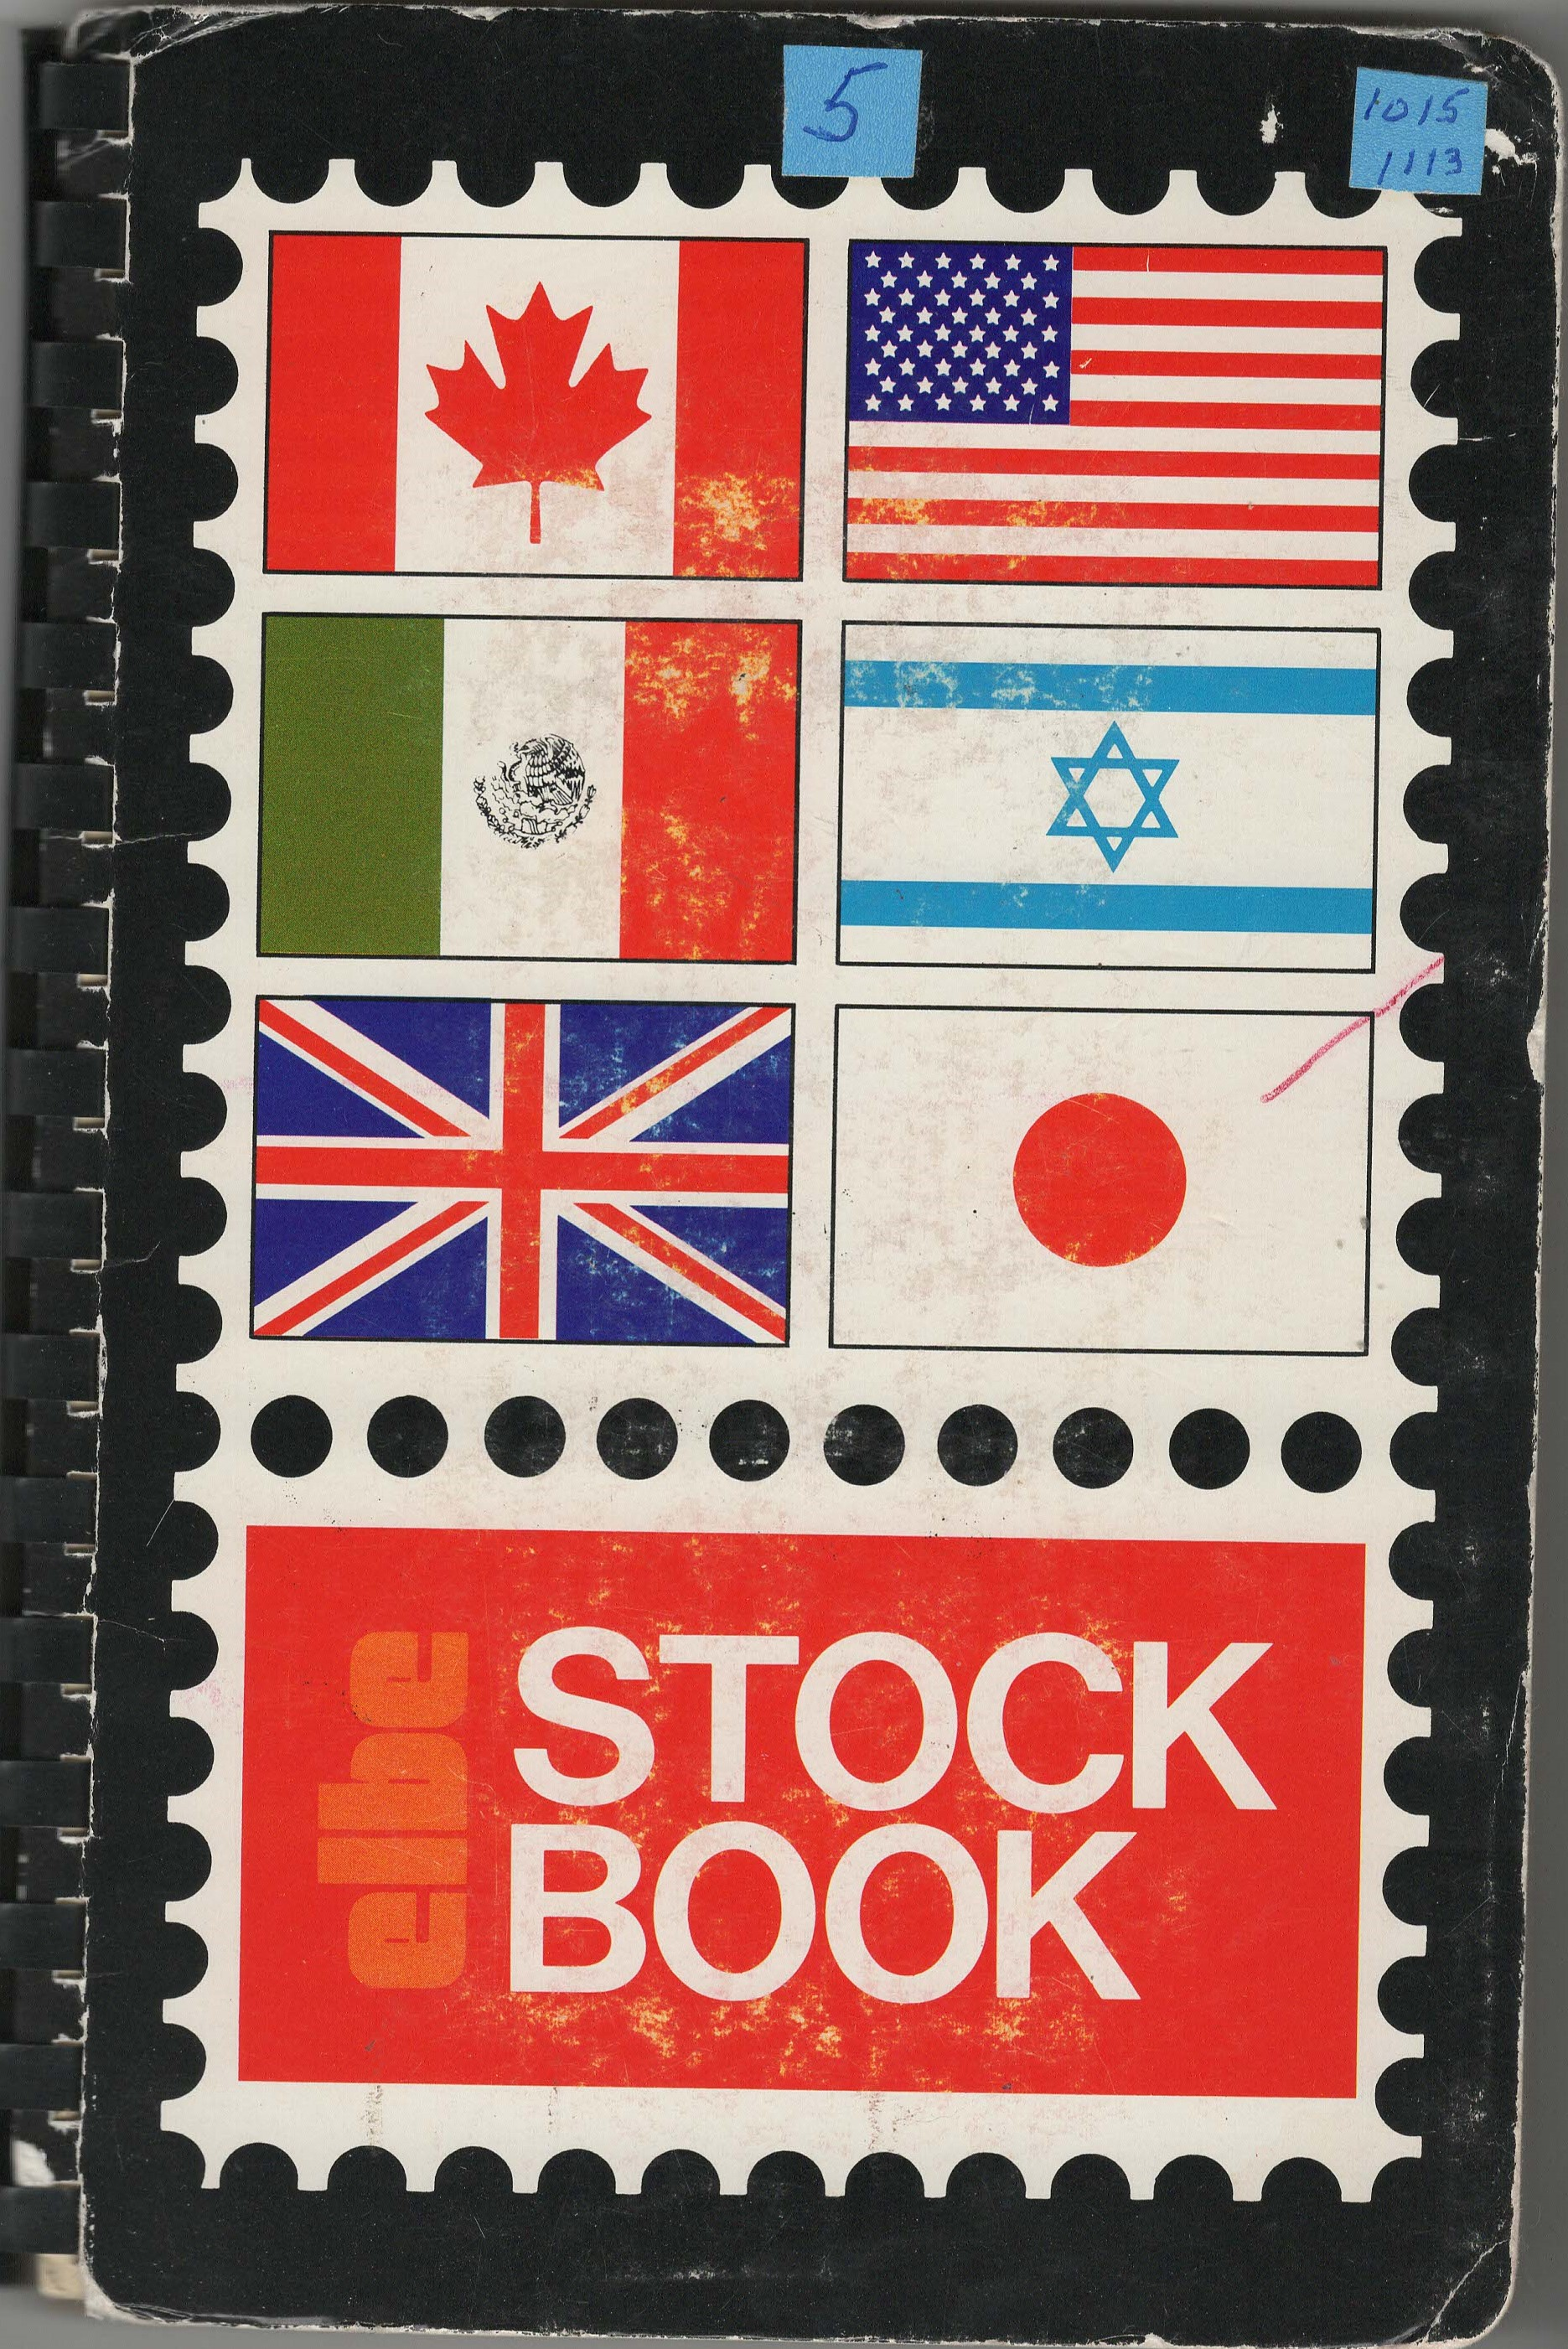 Stamp value book  US Postage stamps  2019-07-30